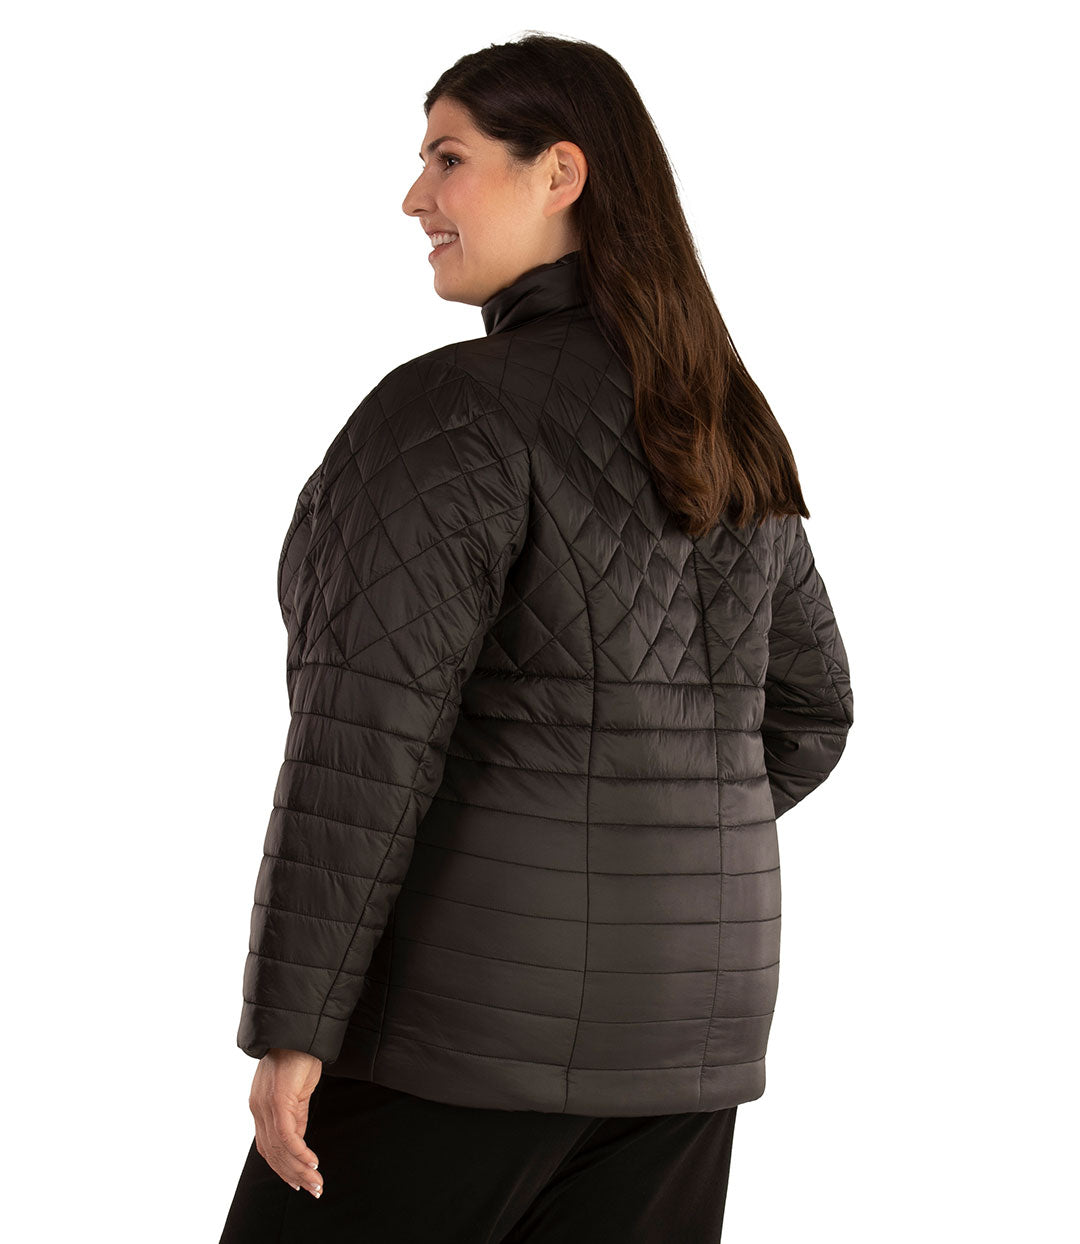 Quilted Active Length Jacket-Outerwear Jacket-Hangzhou Yelta Import and Export Co.,Ltd-XL-Black-JunoActive